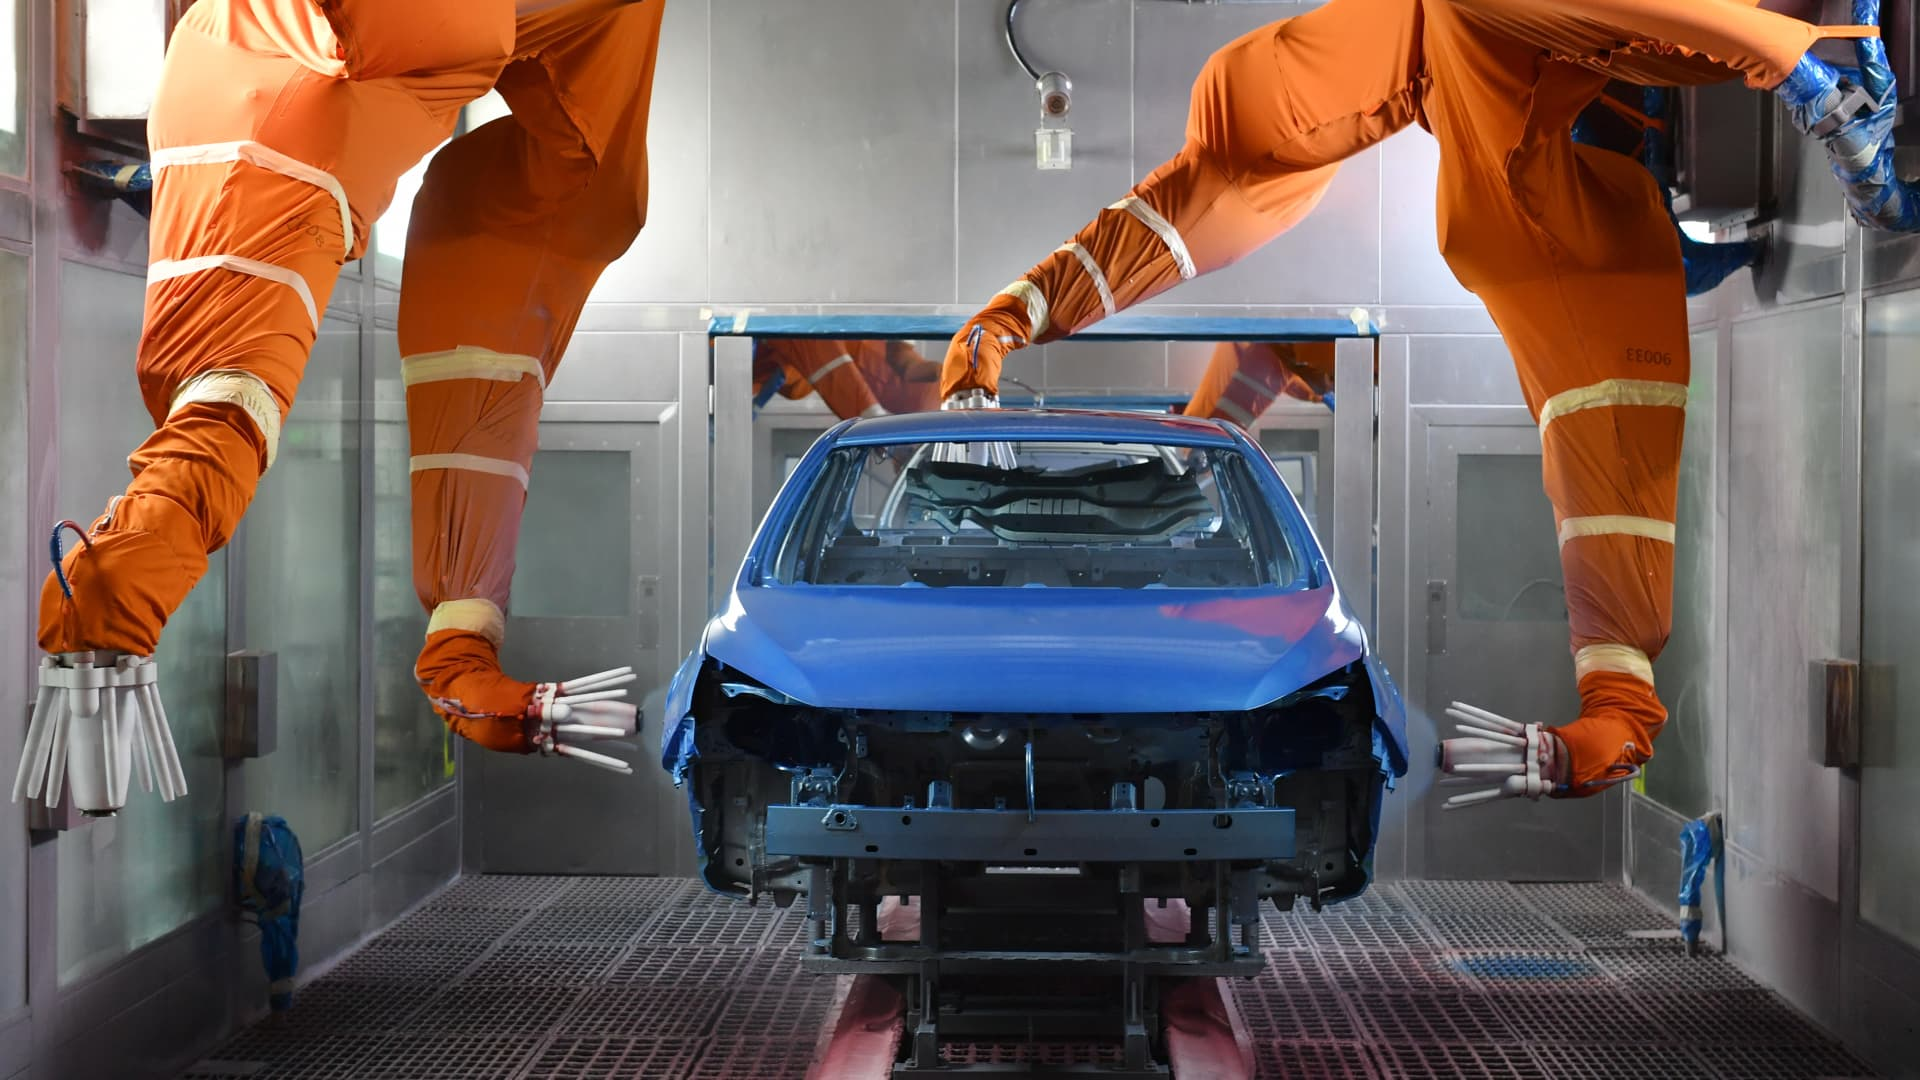 Robotic arms spray paint a car body shell at the BYD Automobile Company Limited Xi'an plant on December 25, 2019 in Xi'an, Shaanxi Province of China.